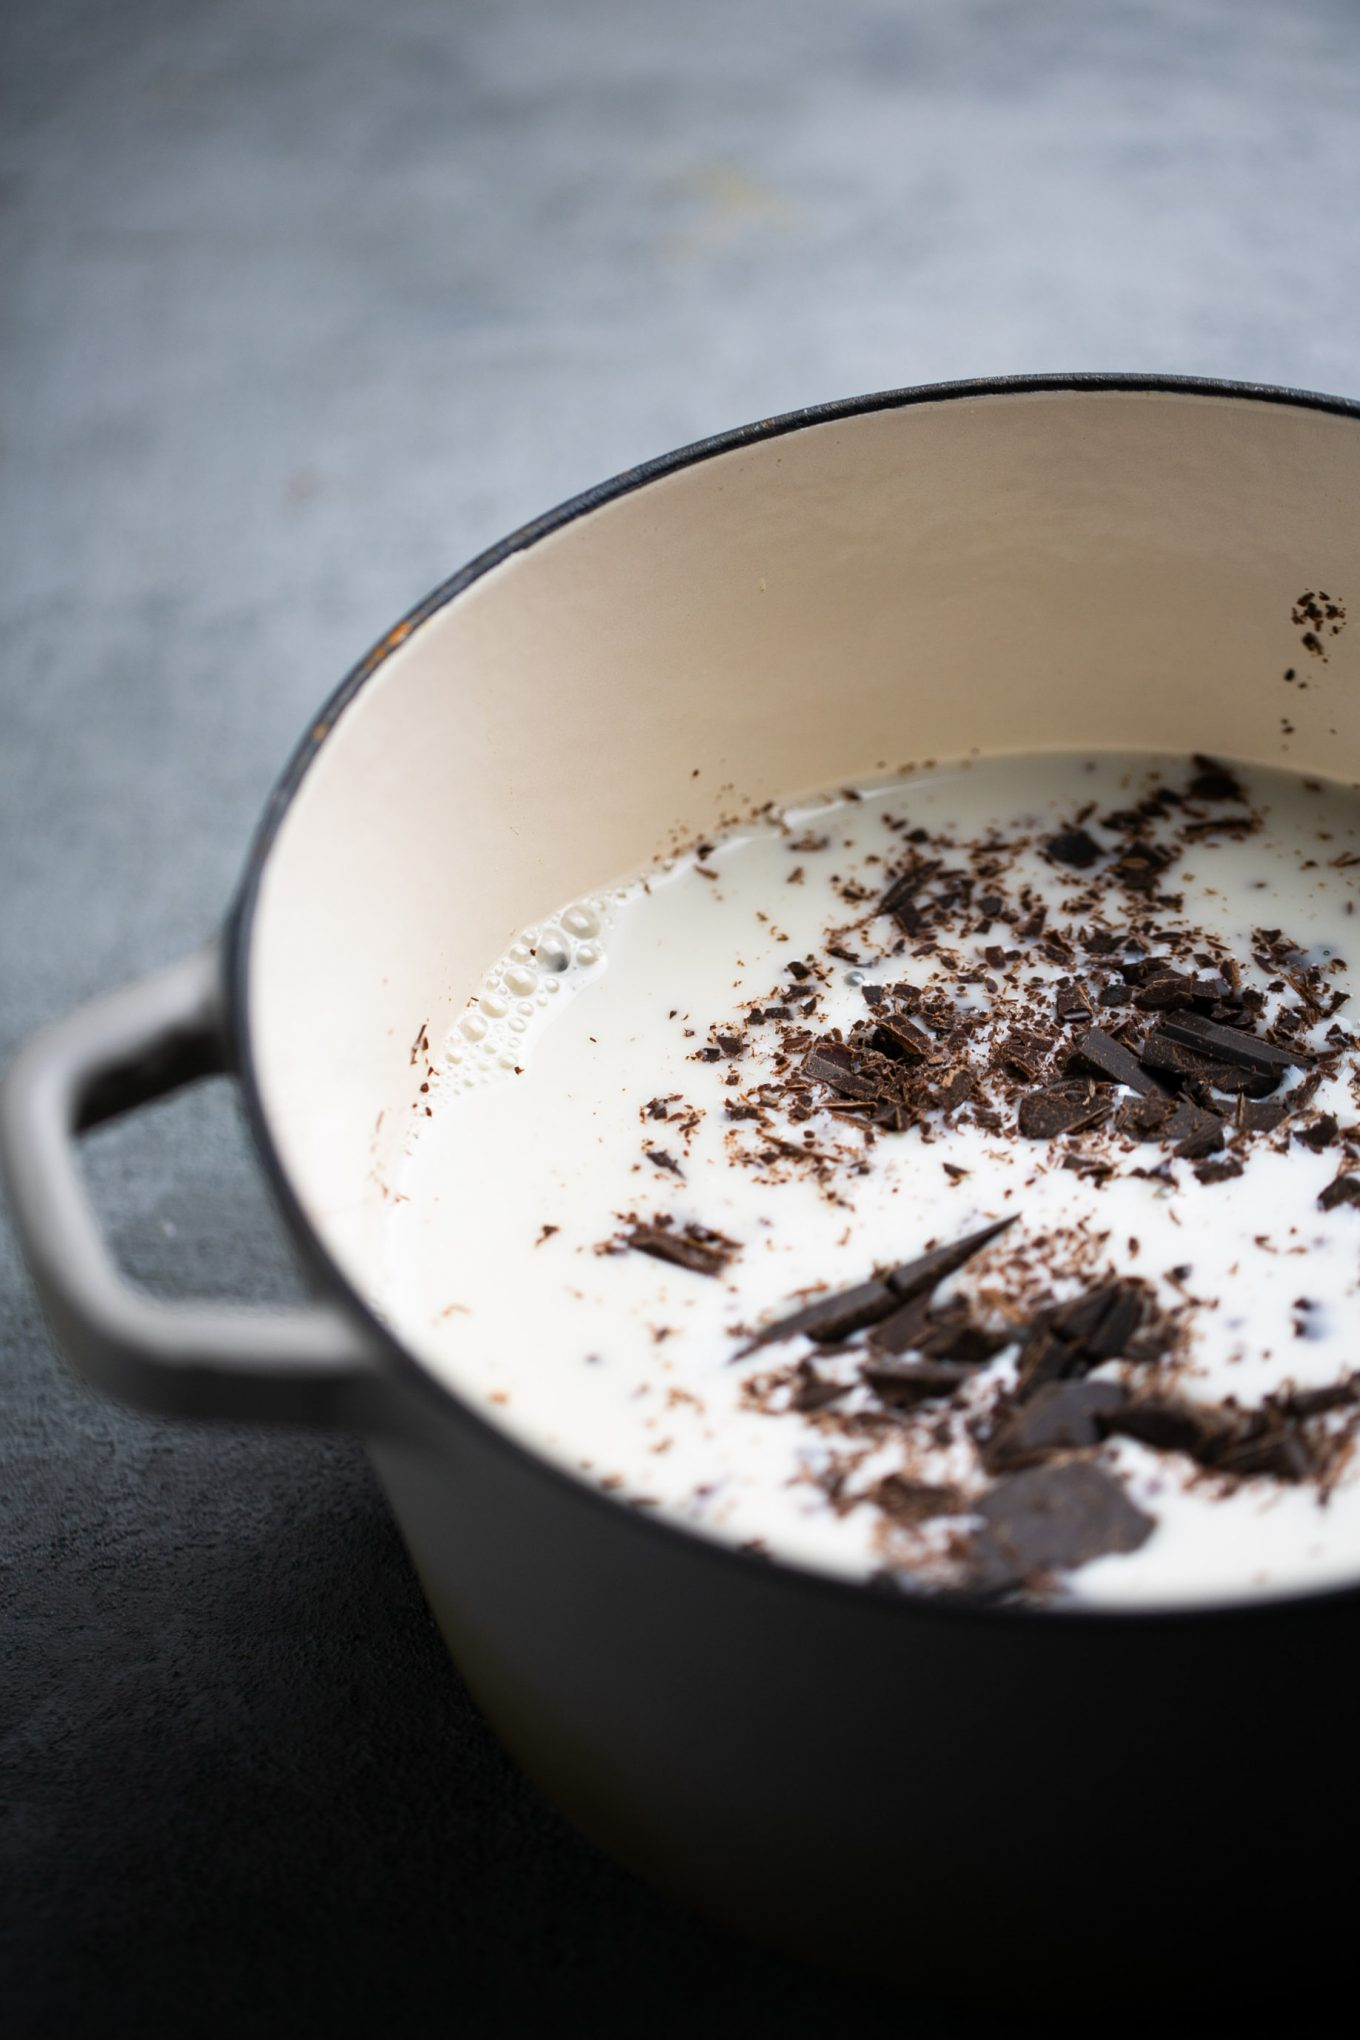 A pot with milk and chopped dark chocolate